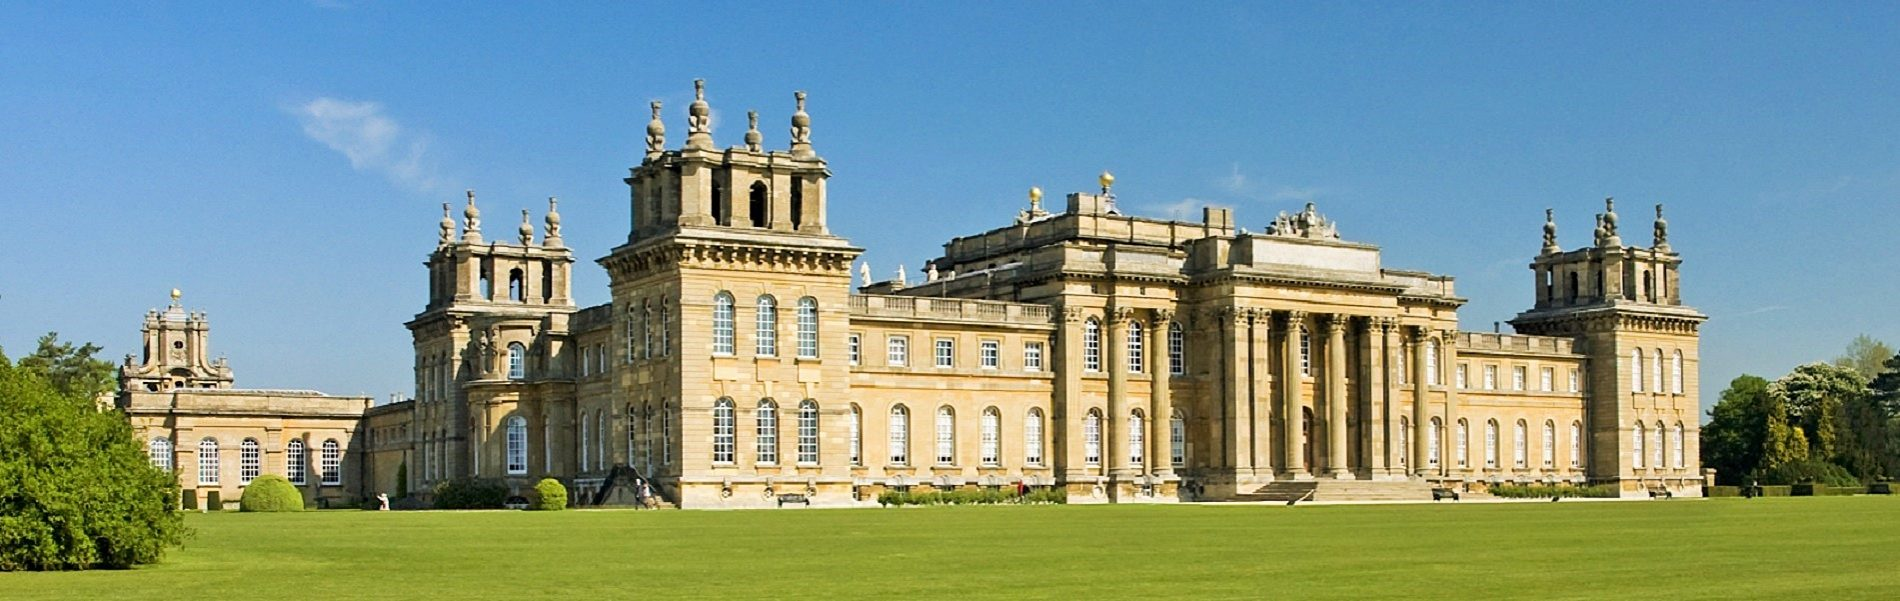 Tours of England - Blenheim Palace